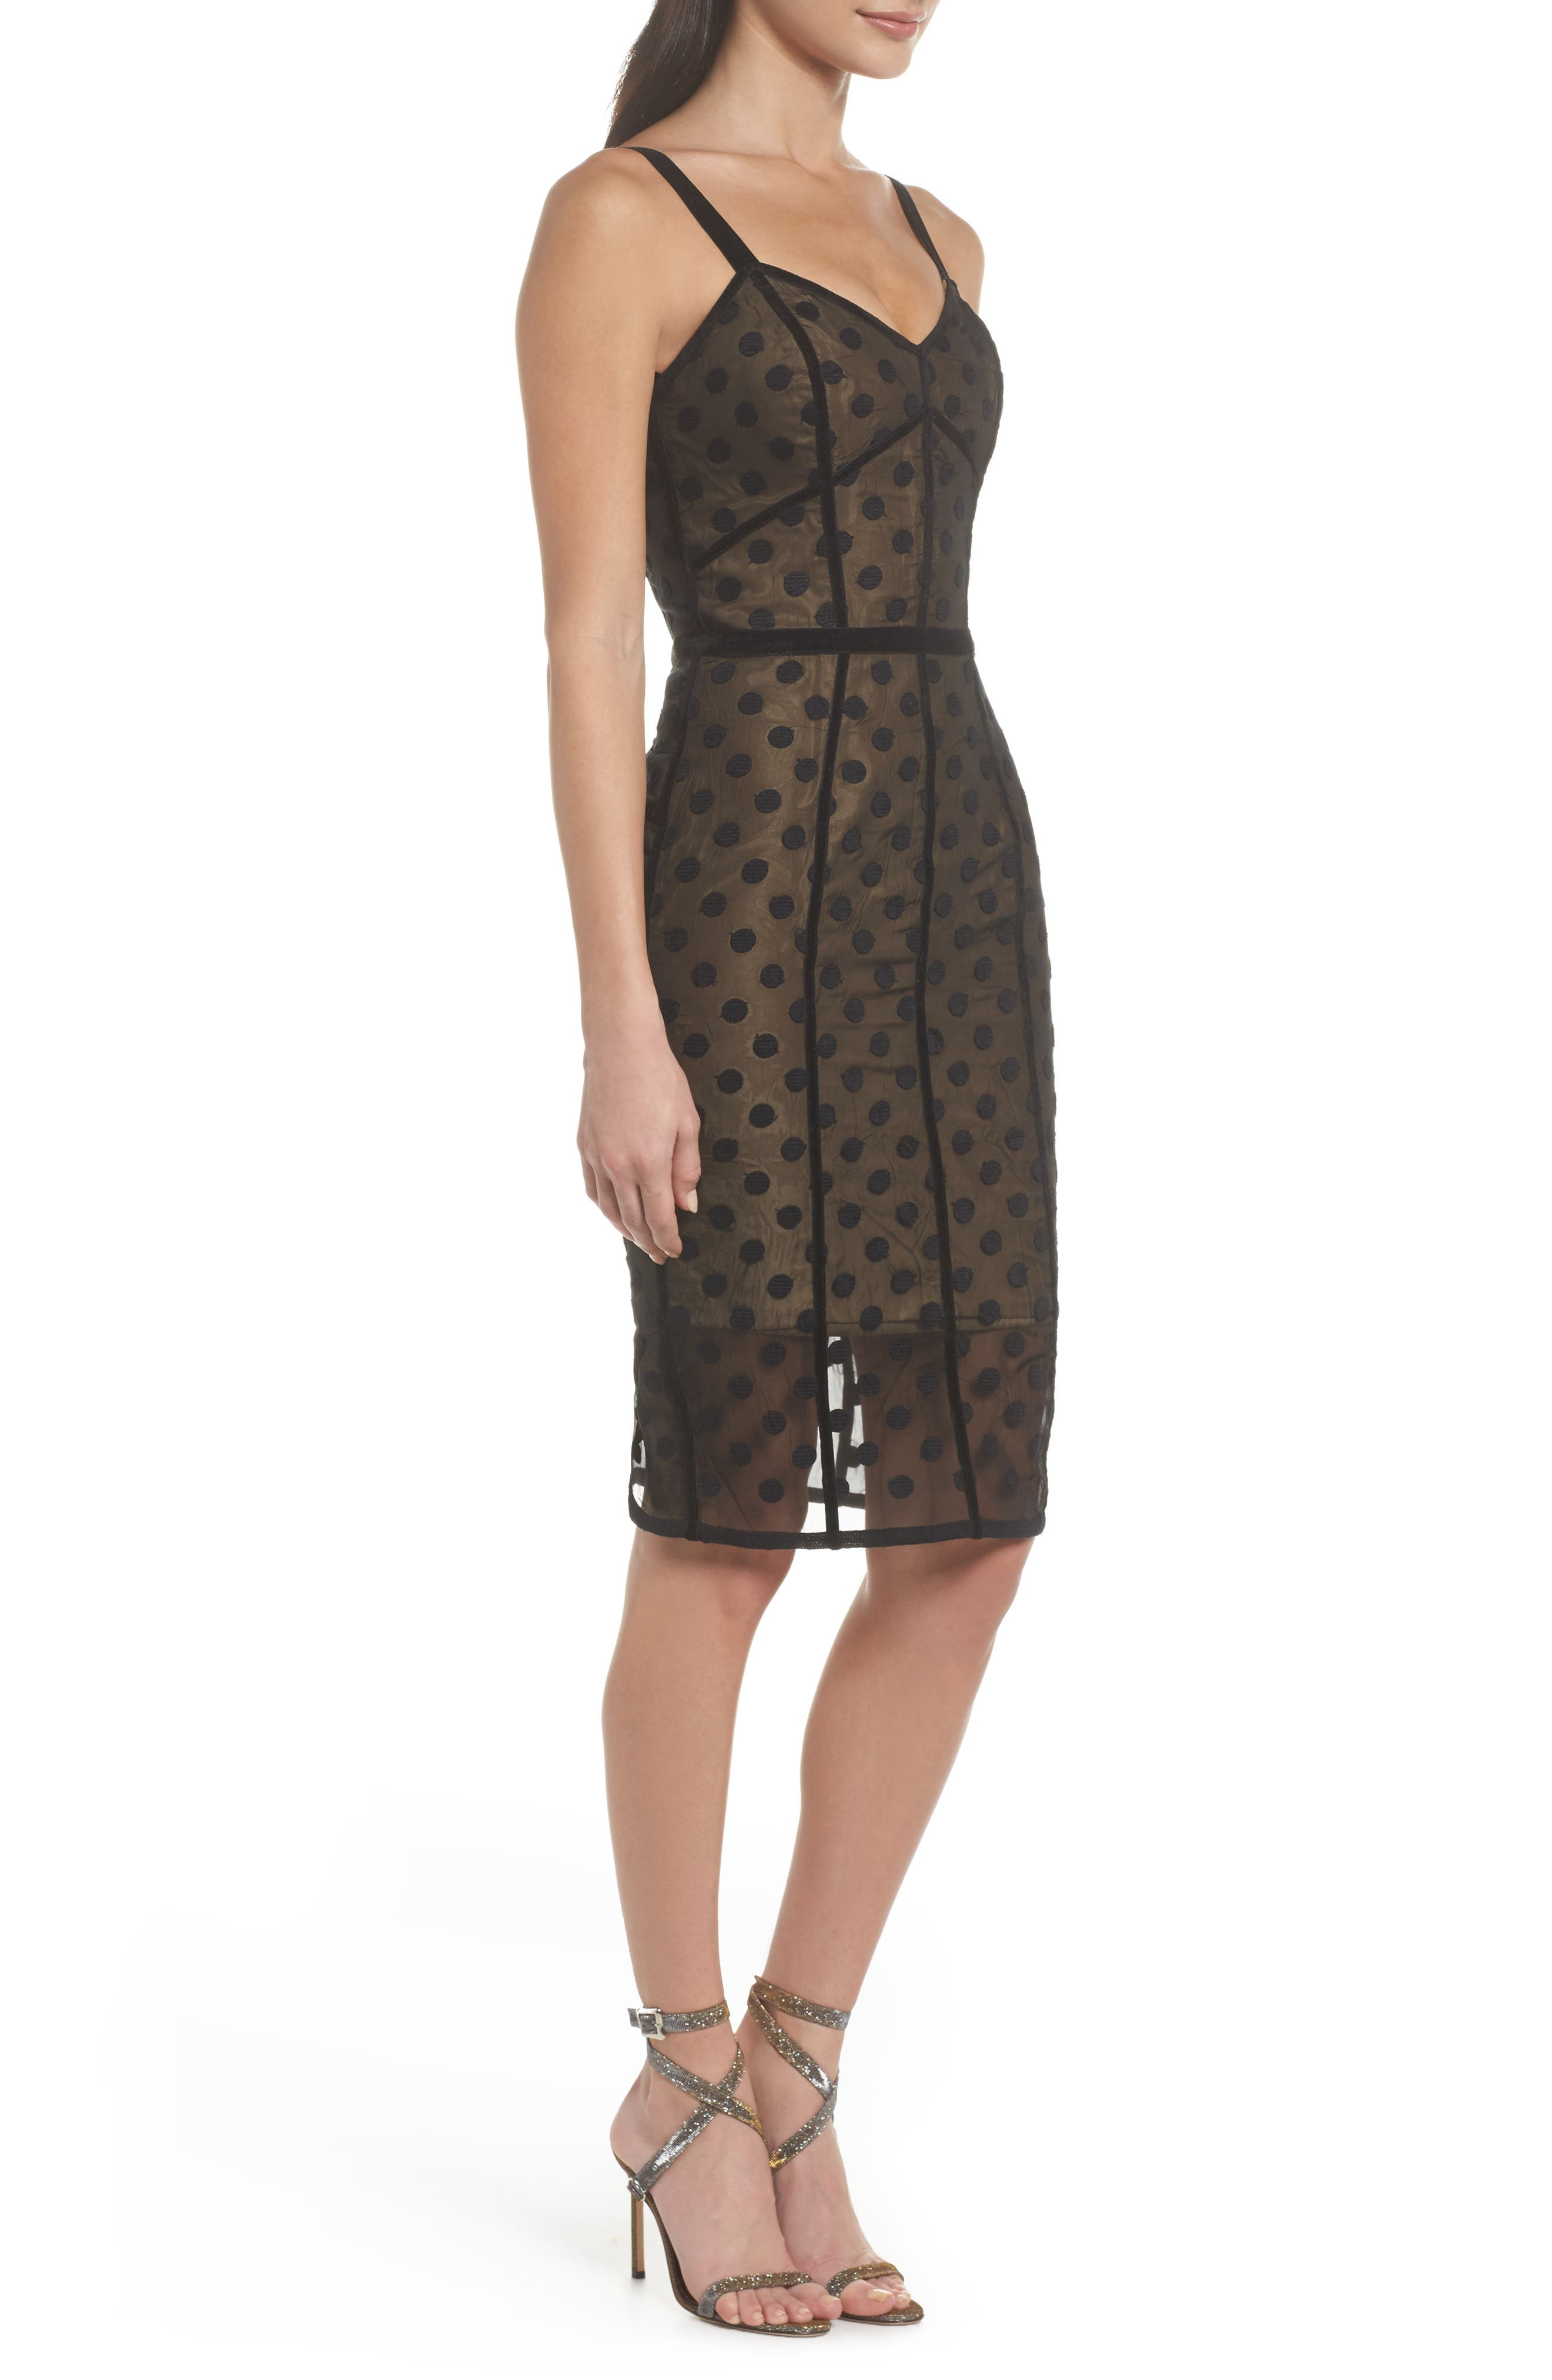 Isabella Noir Dot Embroidered Body-Con Dress,                             Alternate thumbnail 7, color,                             Black/ Nude